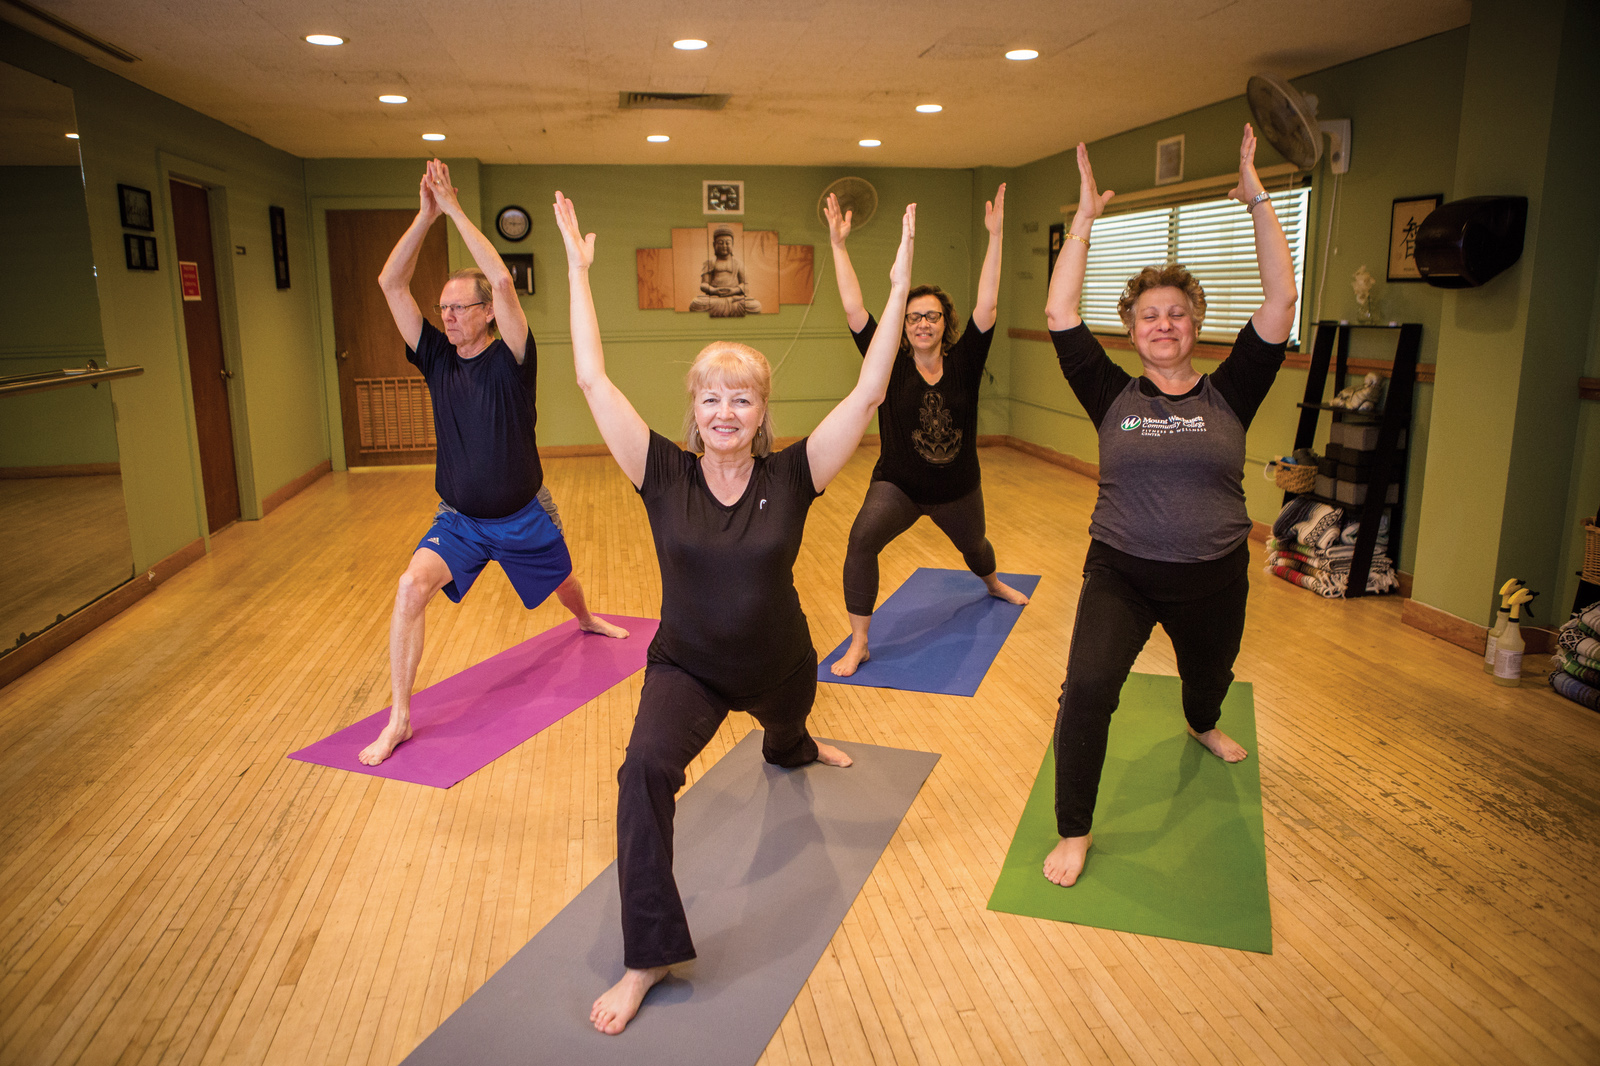 Four people do a yoga pose with their hands in the air.